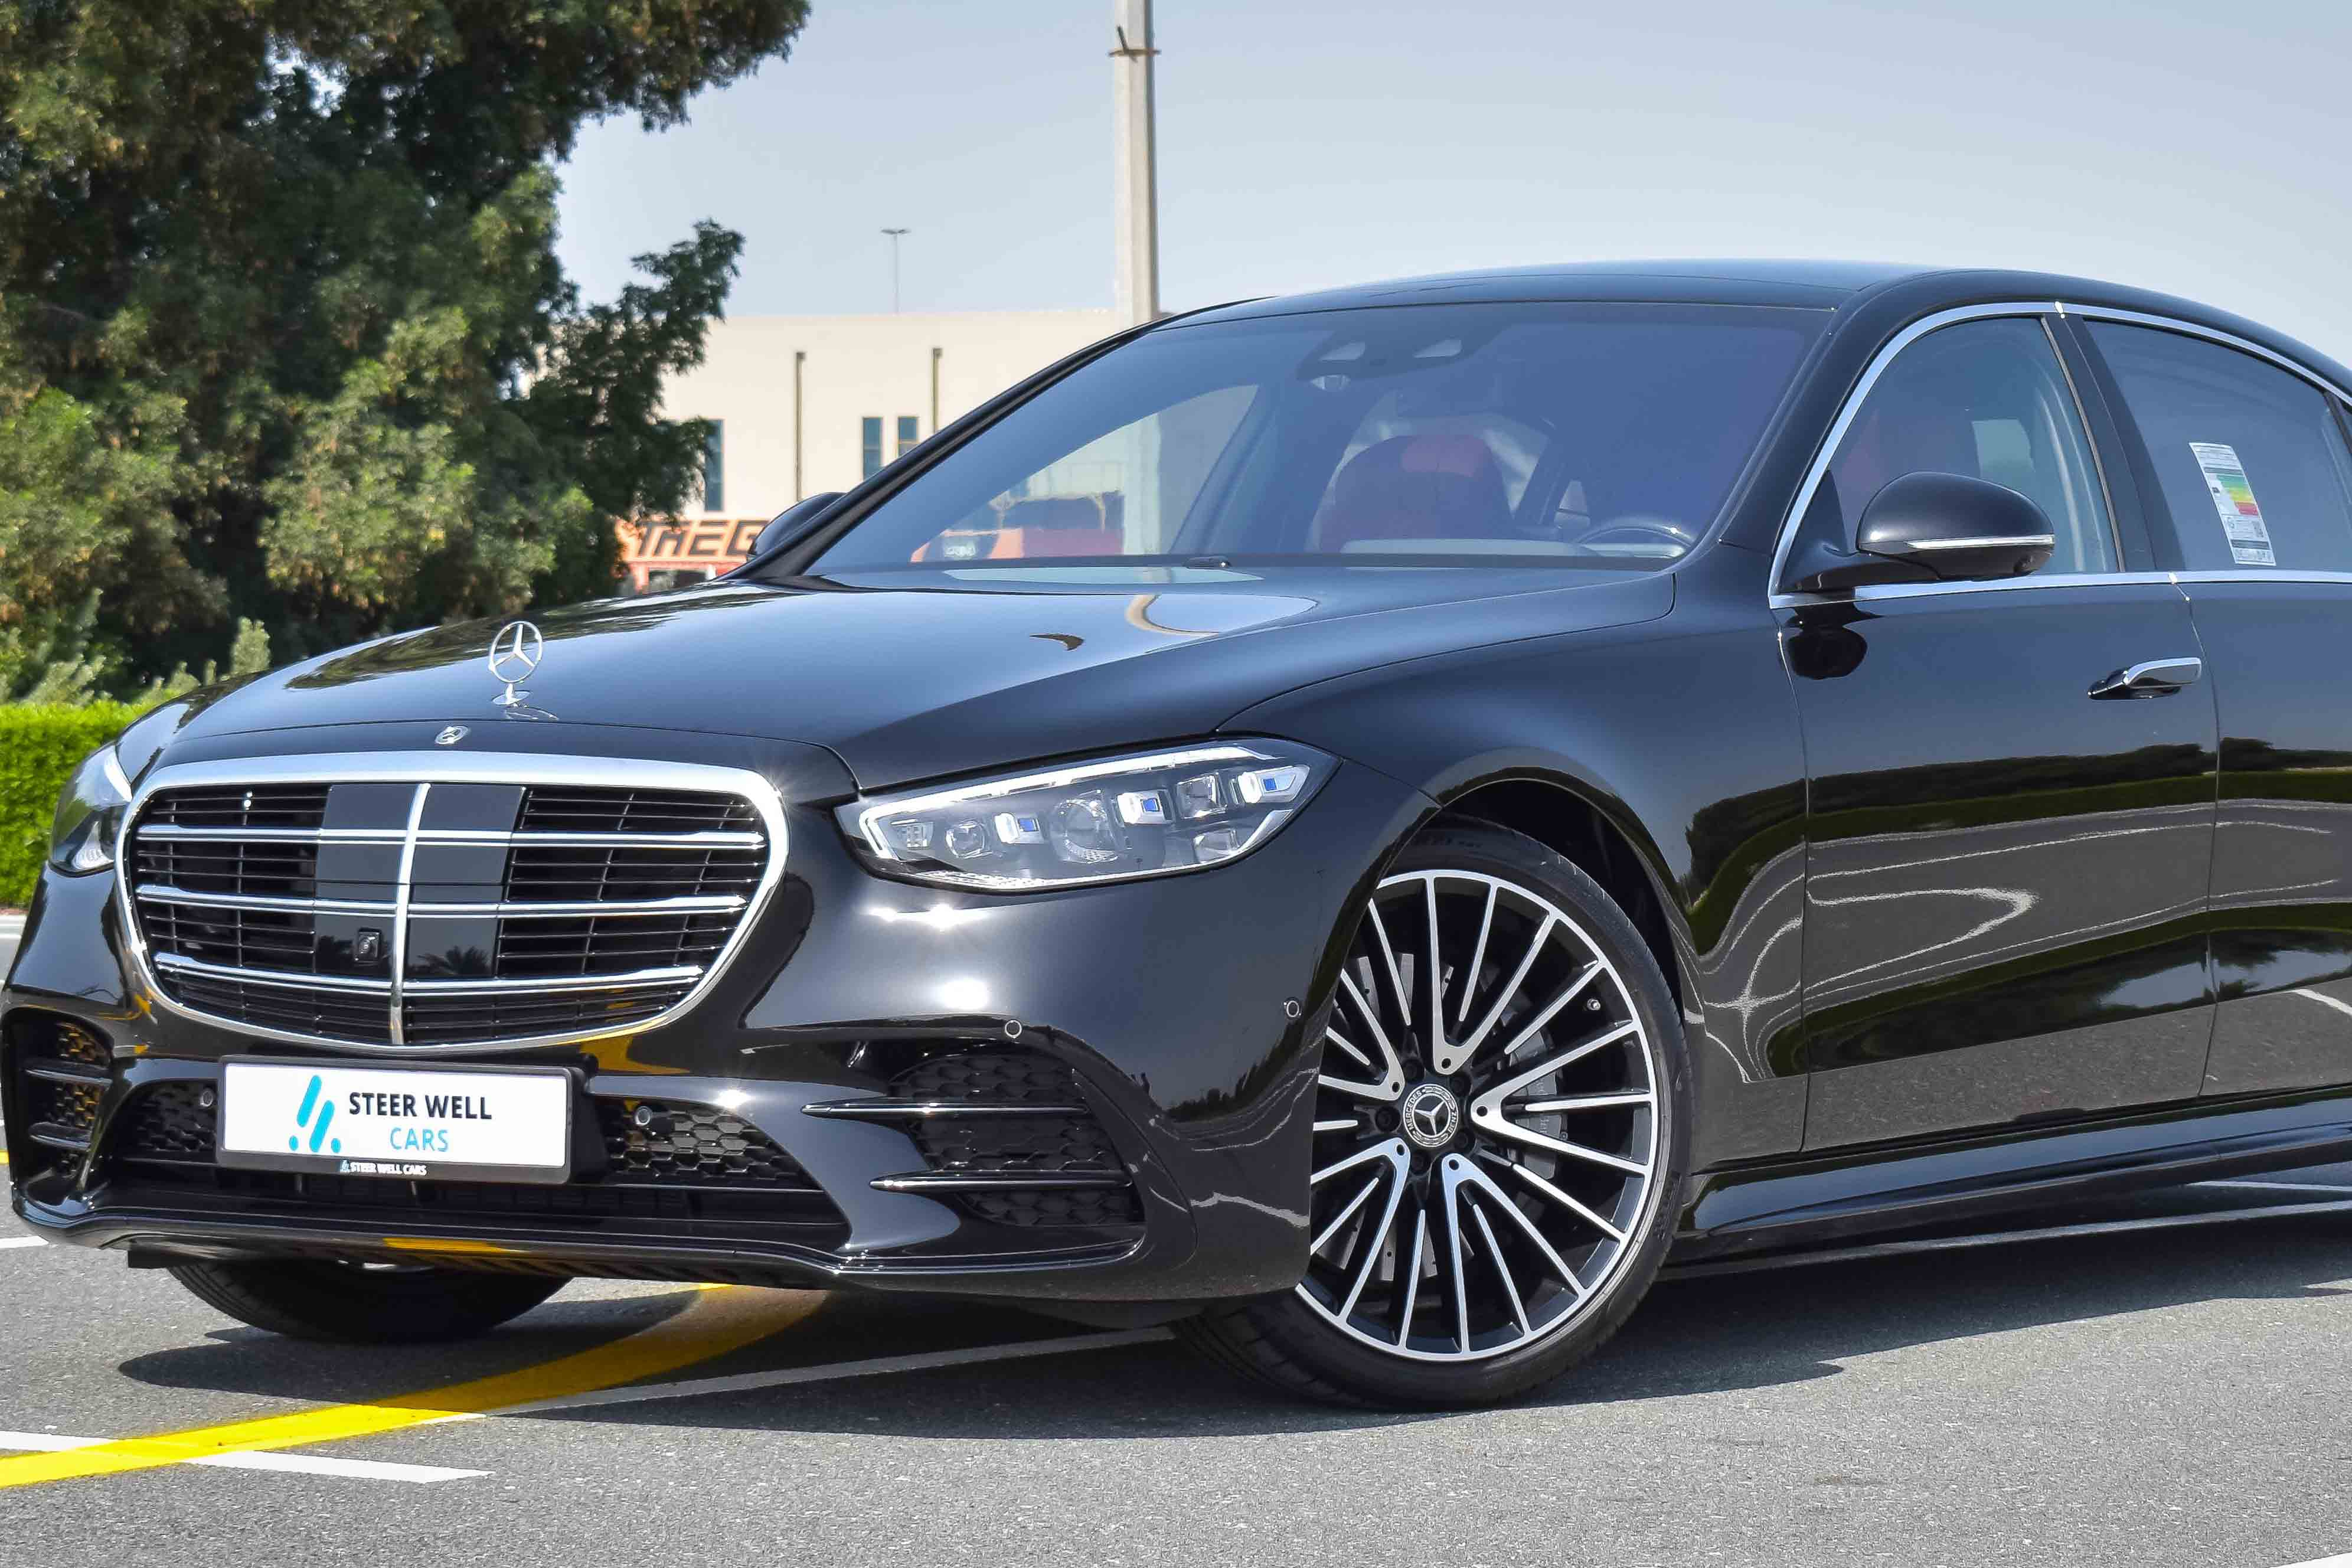 2021 MERCEDES S500 2021 4M AMG WITH GCC SPECS  5 YEARS WARRANTY AND SERVICE CONTRACT